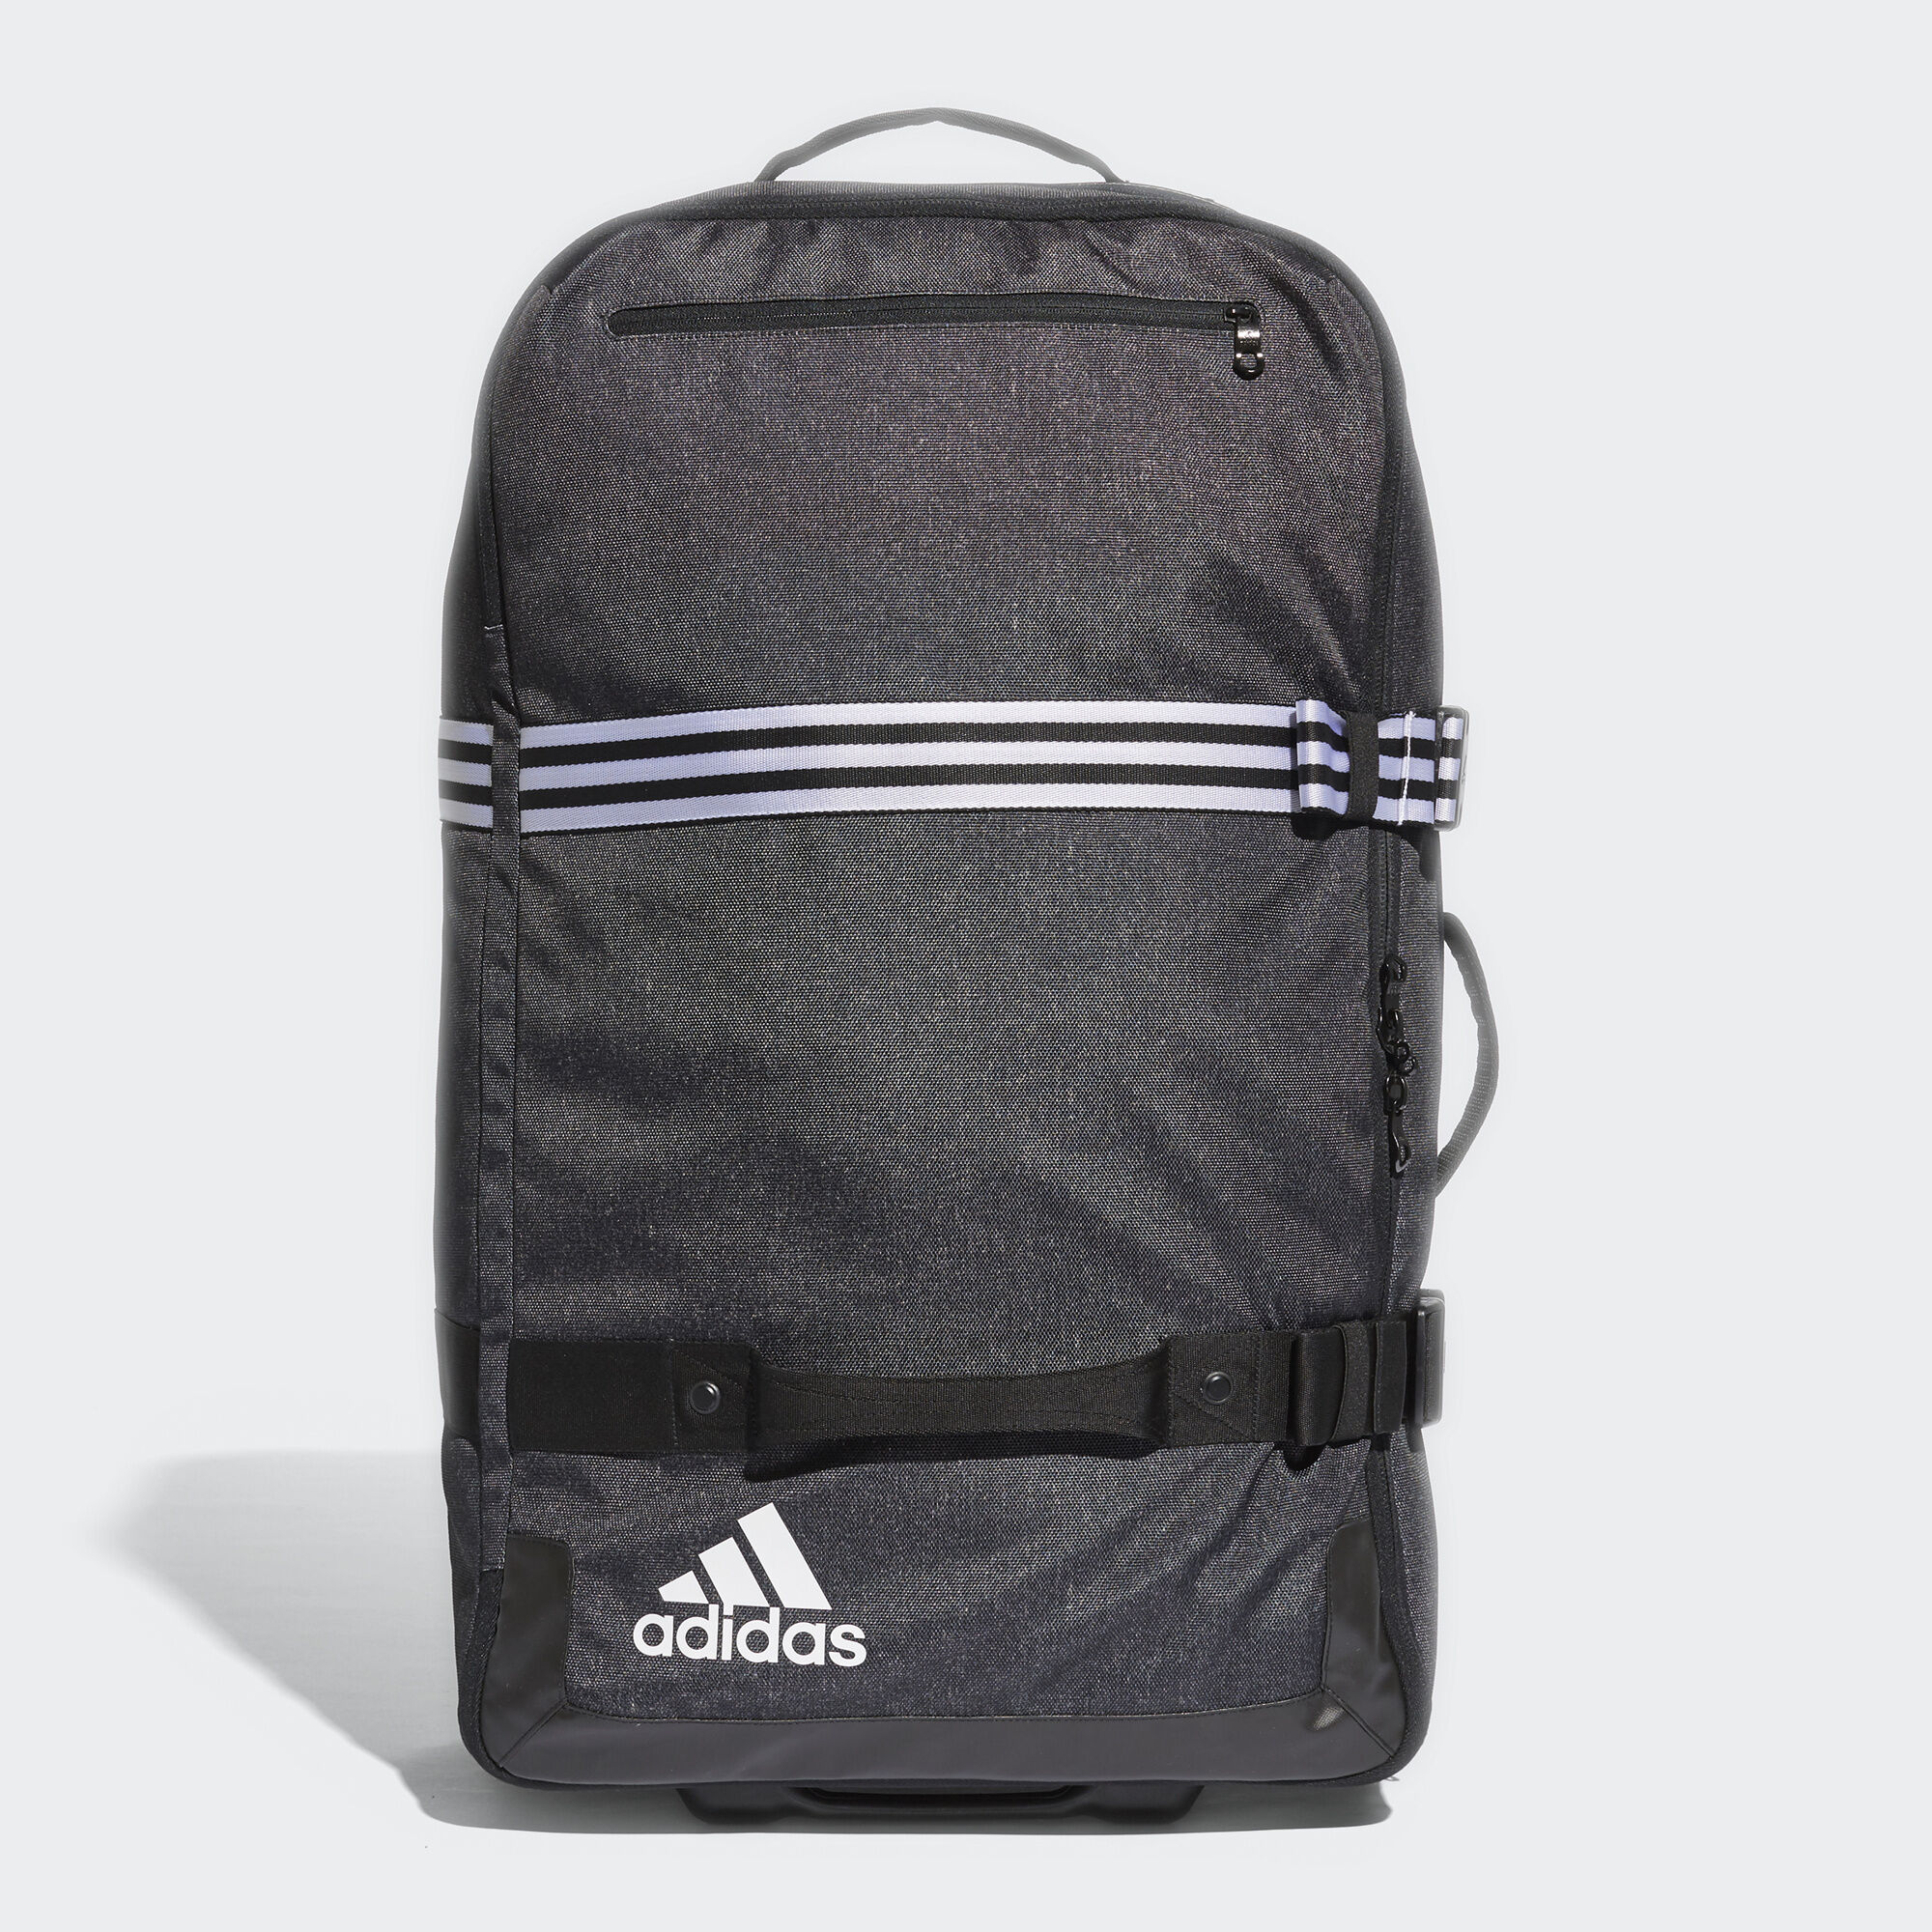 224d0fabecb6 Buy adidas roller bag   OFF63% Discounted